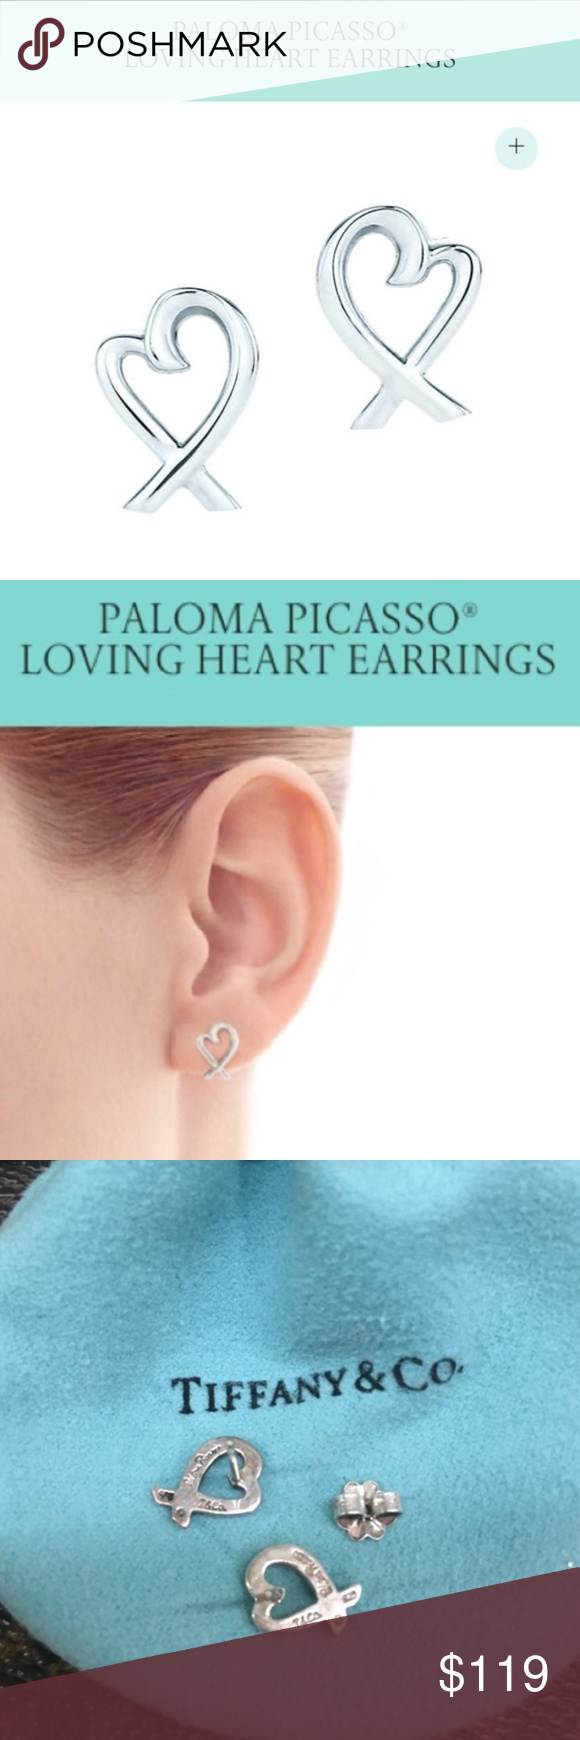 Tiffany Co Paloma Pico Loving Heart Earrings In Sterling Silver 100 Authentic